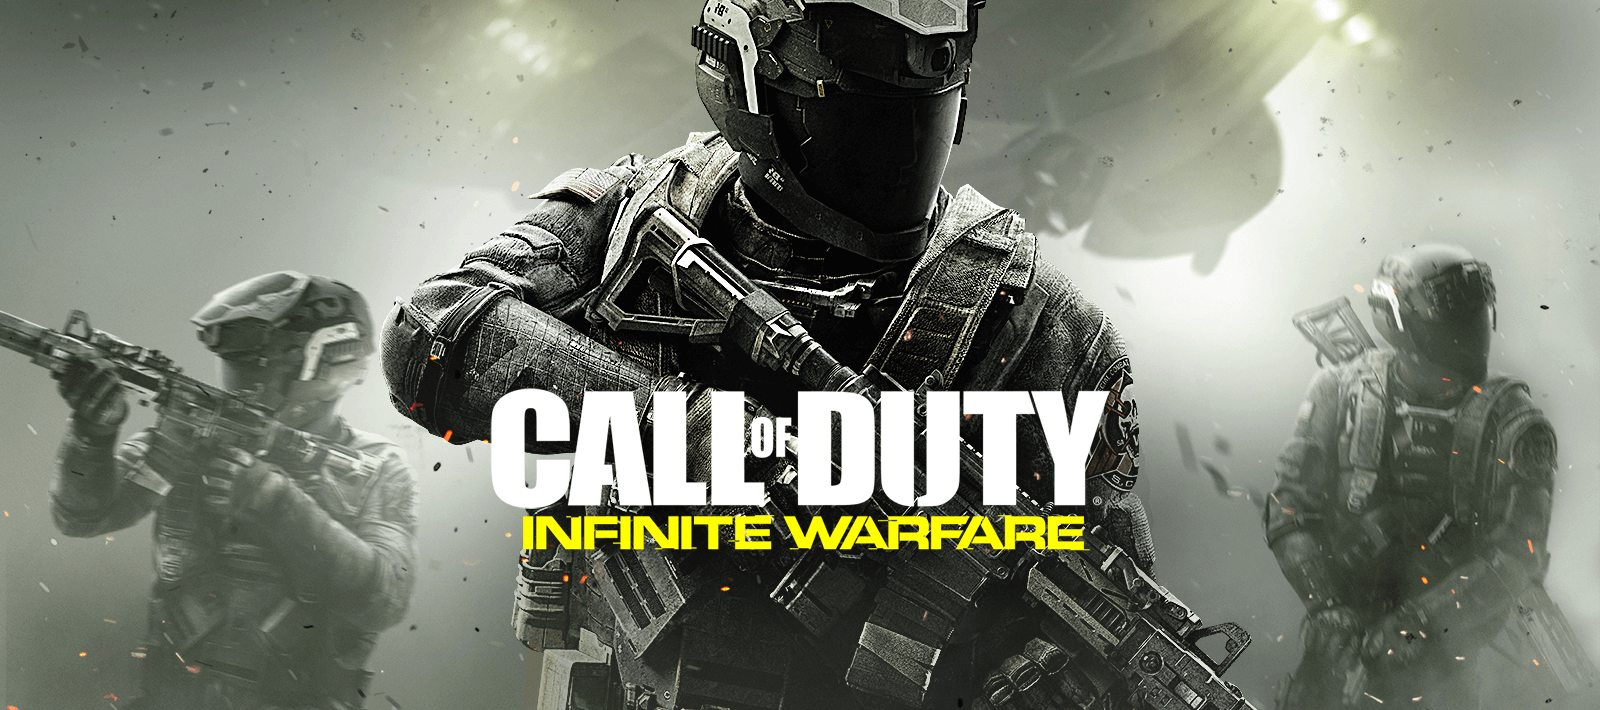 Call of Duty Infinite Warfare Banner